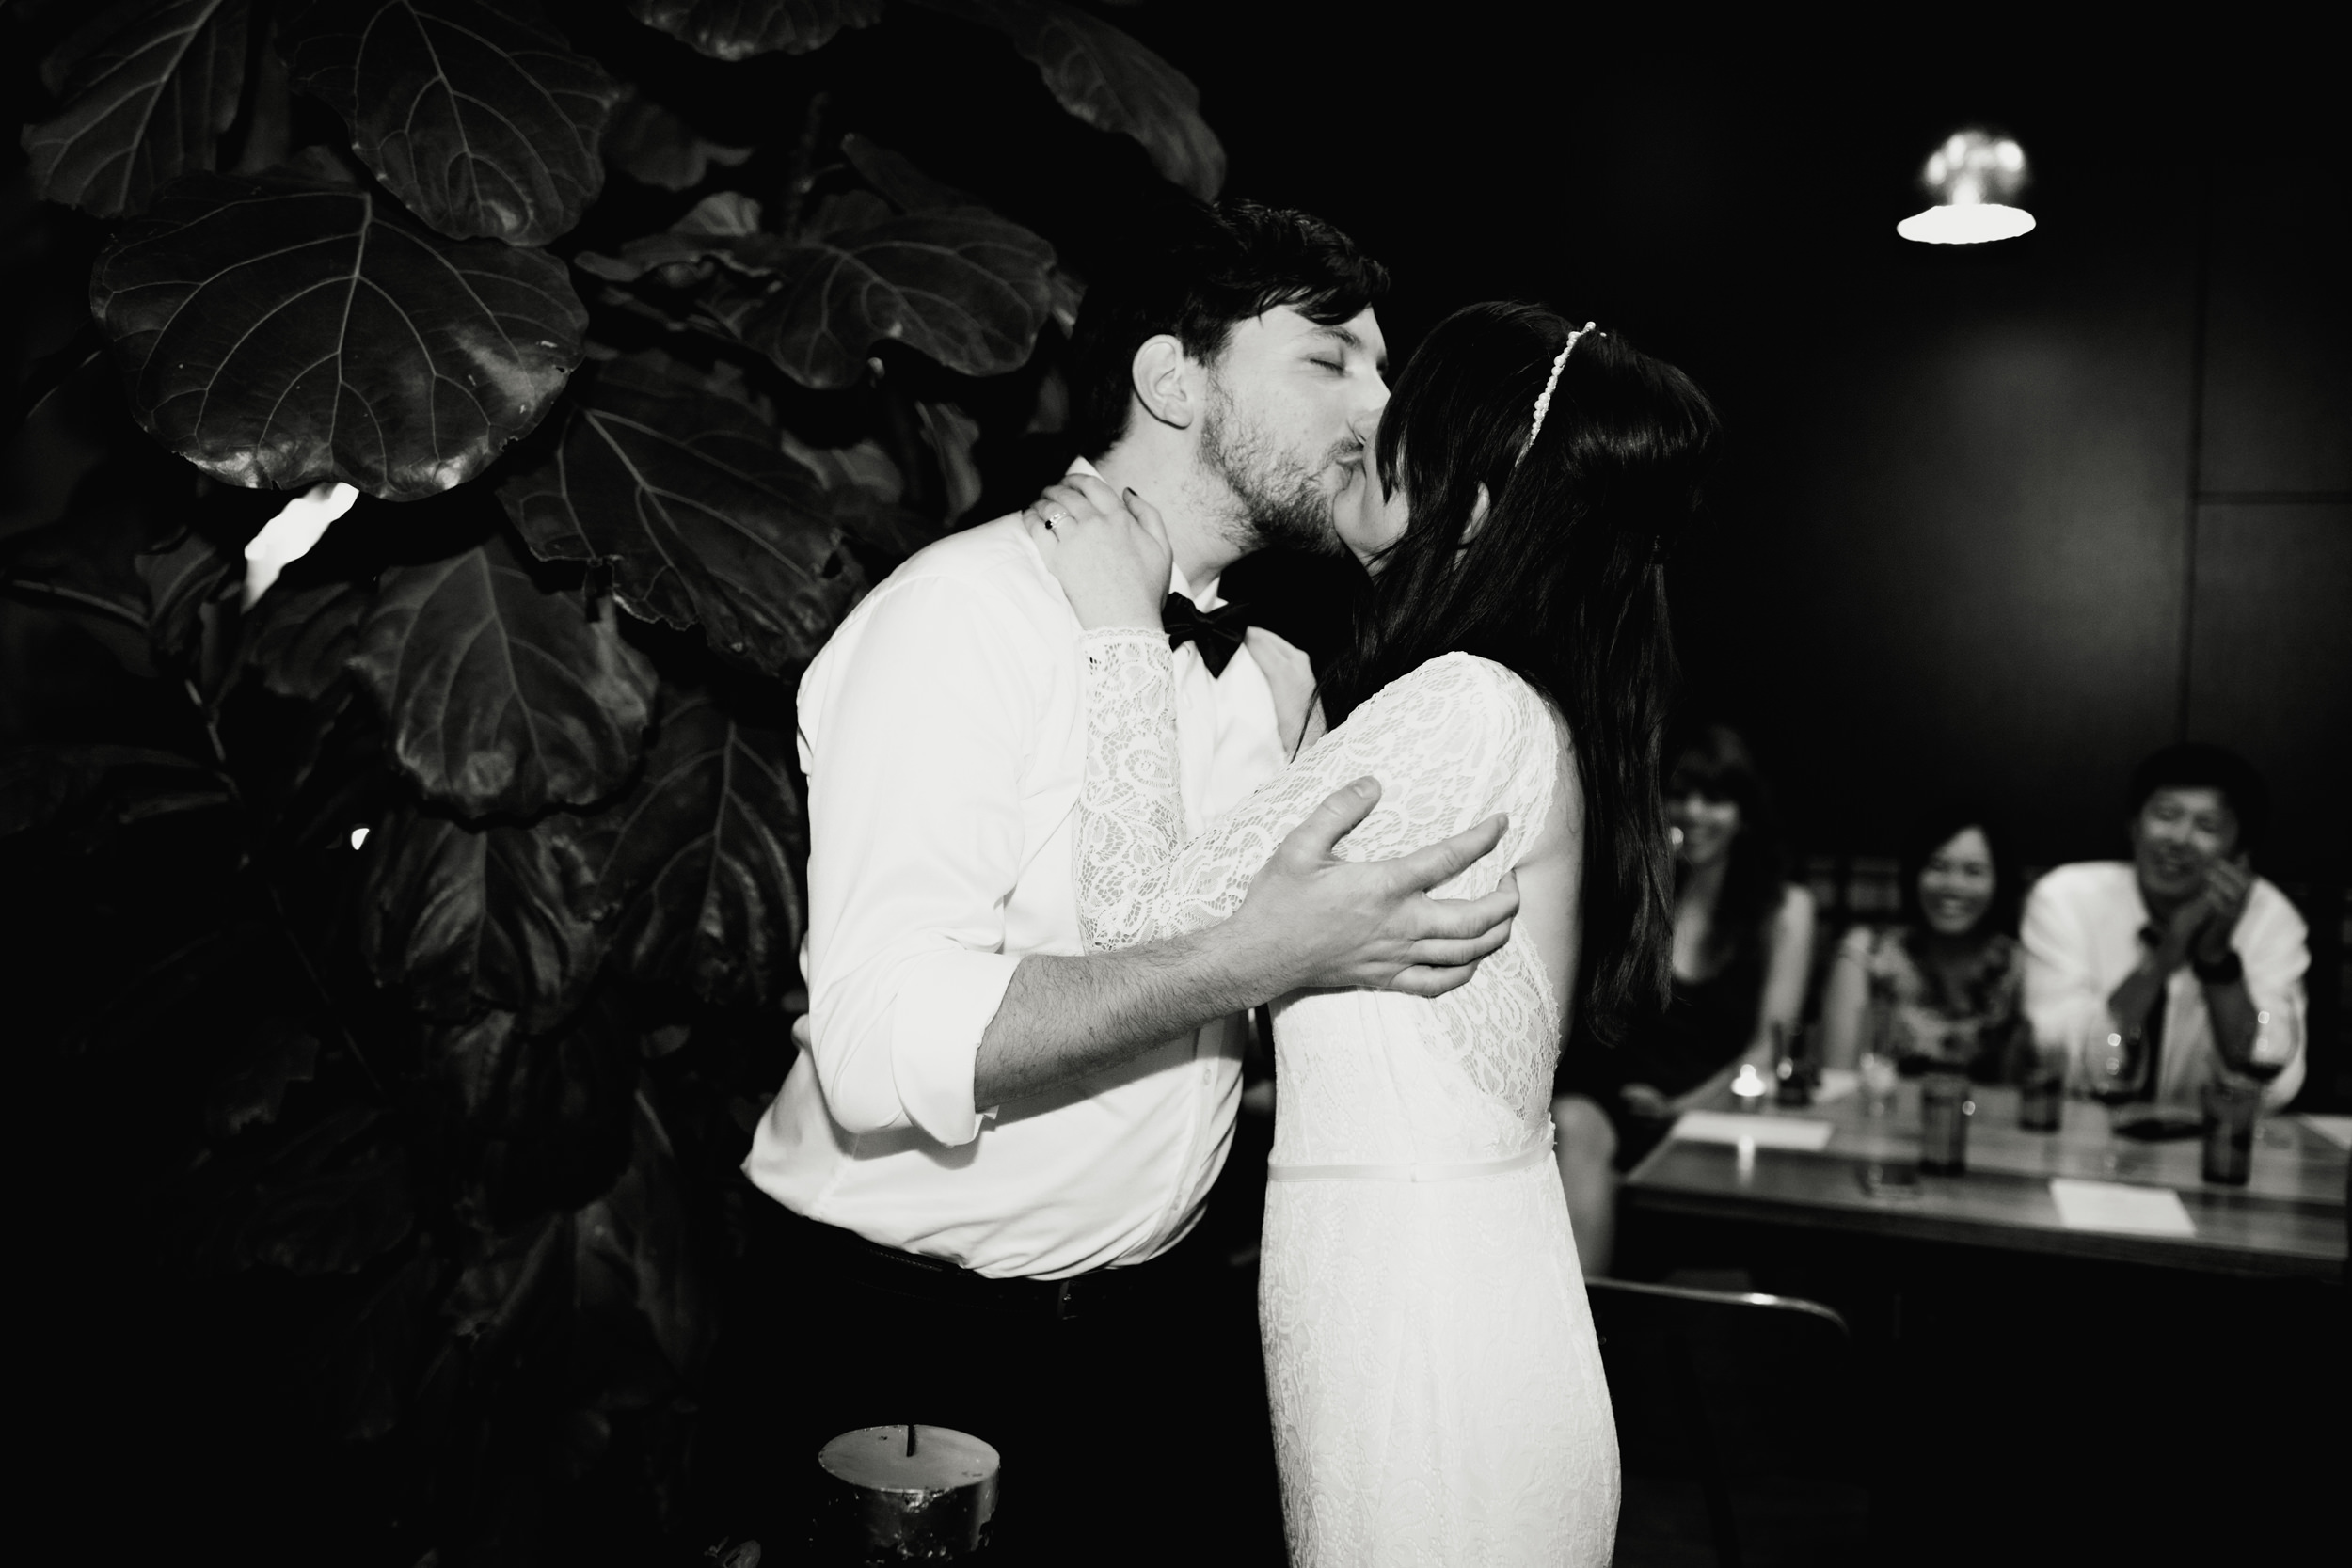 I_Got_You_Babe_Weddings_Emily_Matt_Rupert_Glasshaus_Melbourne0219.JPG